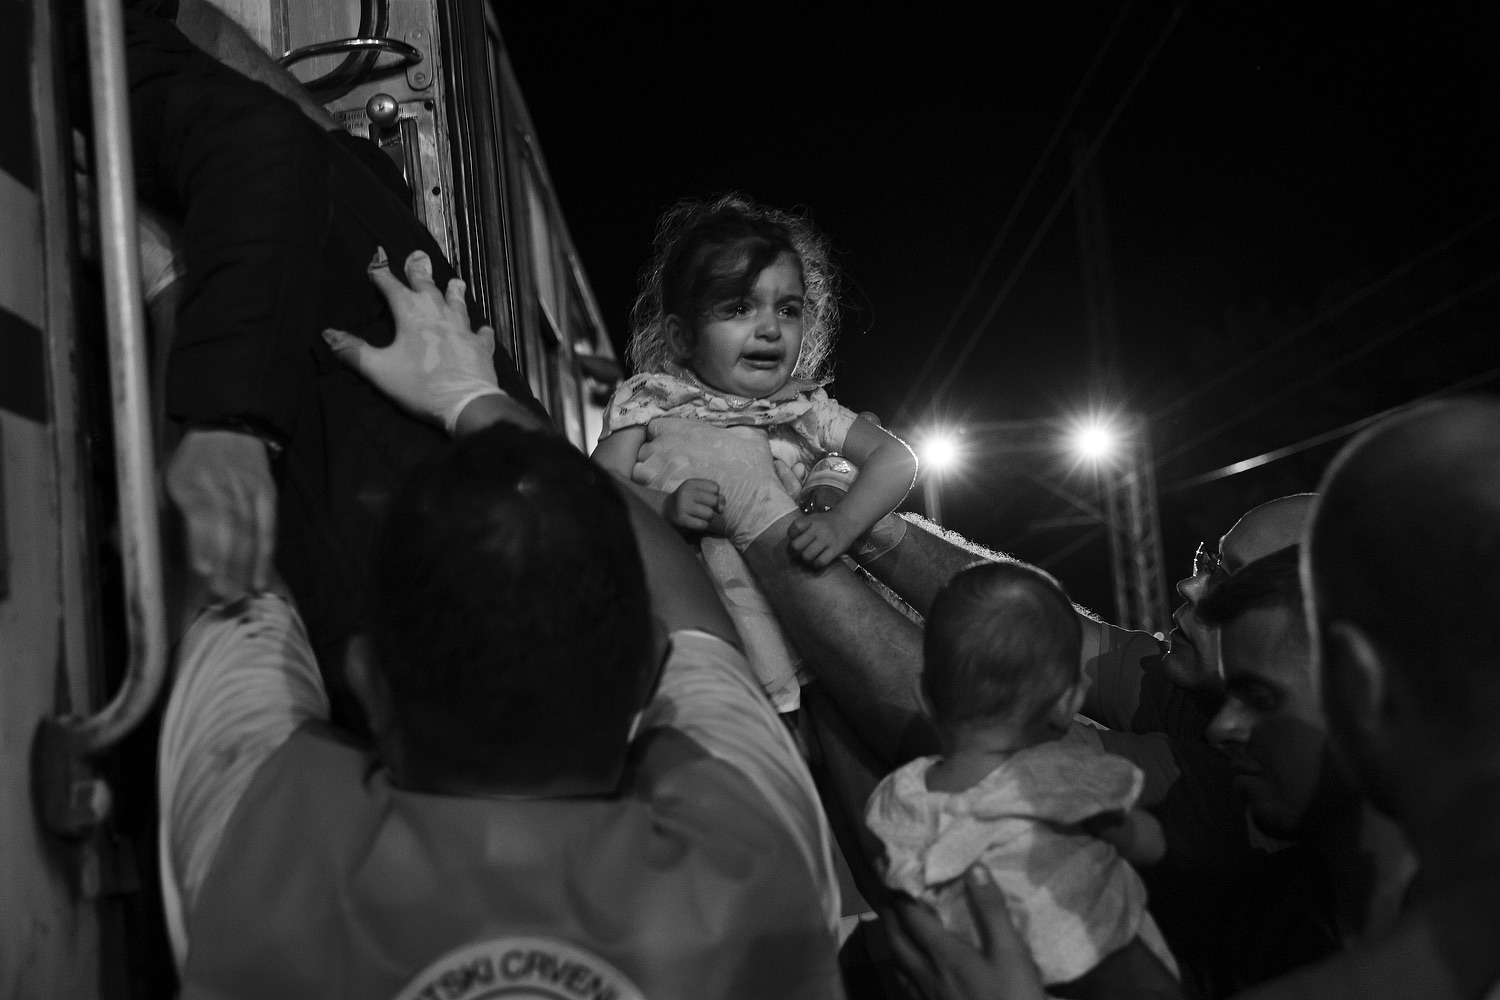 Local NGO workers carry a young girl onto a train in Tovarnik dispatched to transport refugees further into Croatia. 17, 2015.